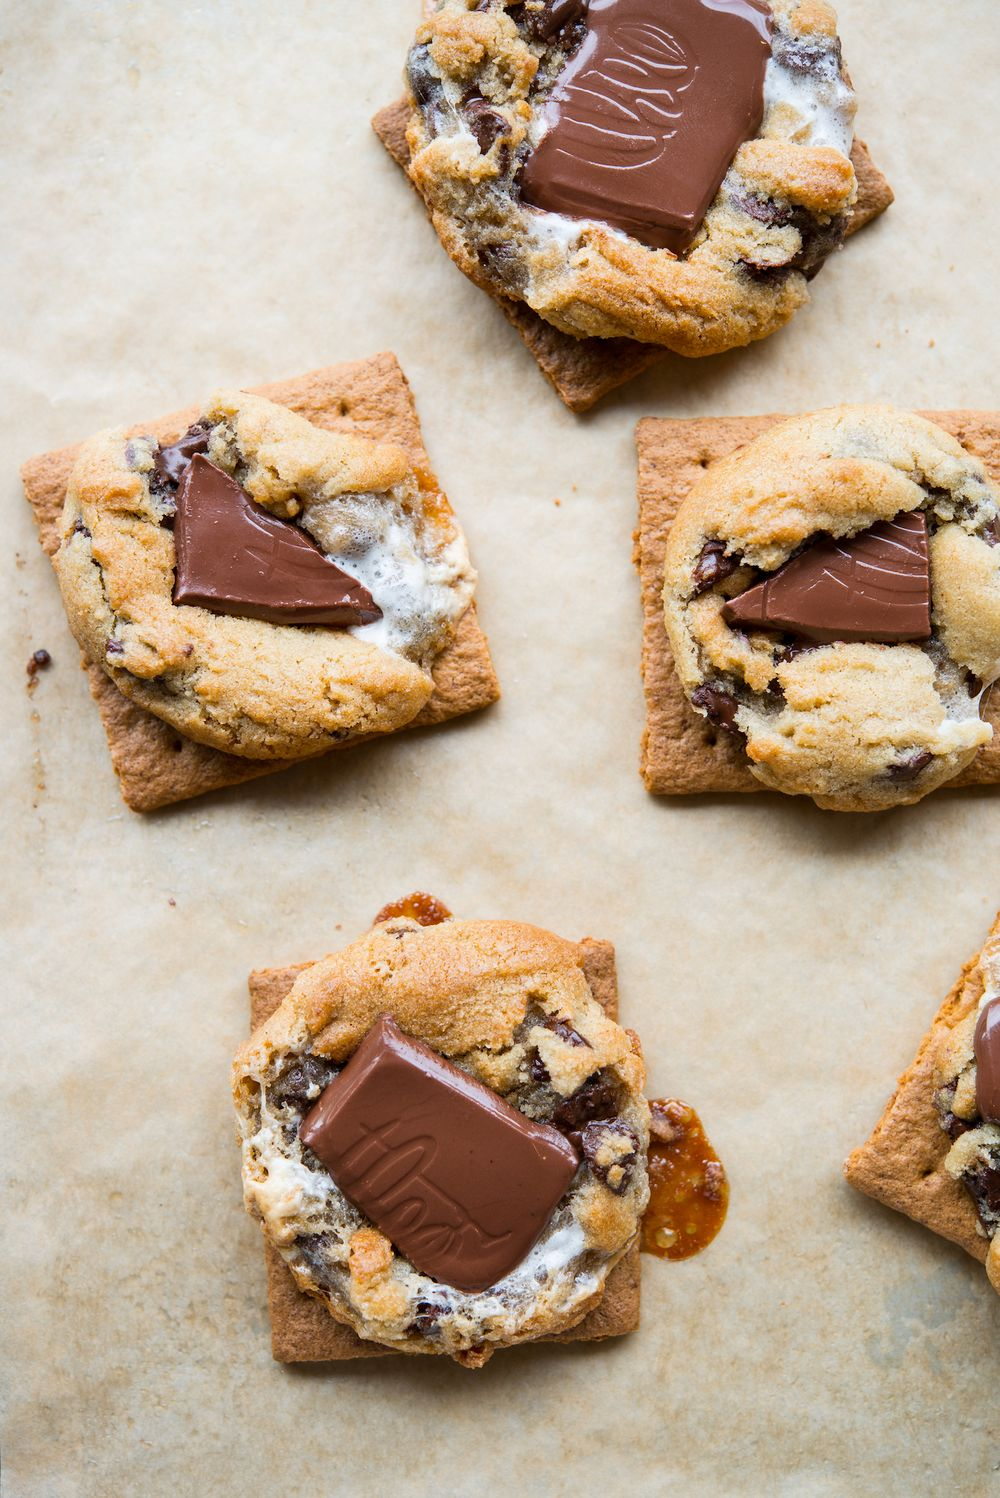 Theo's chocolate smores cookies